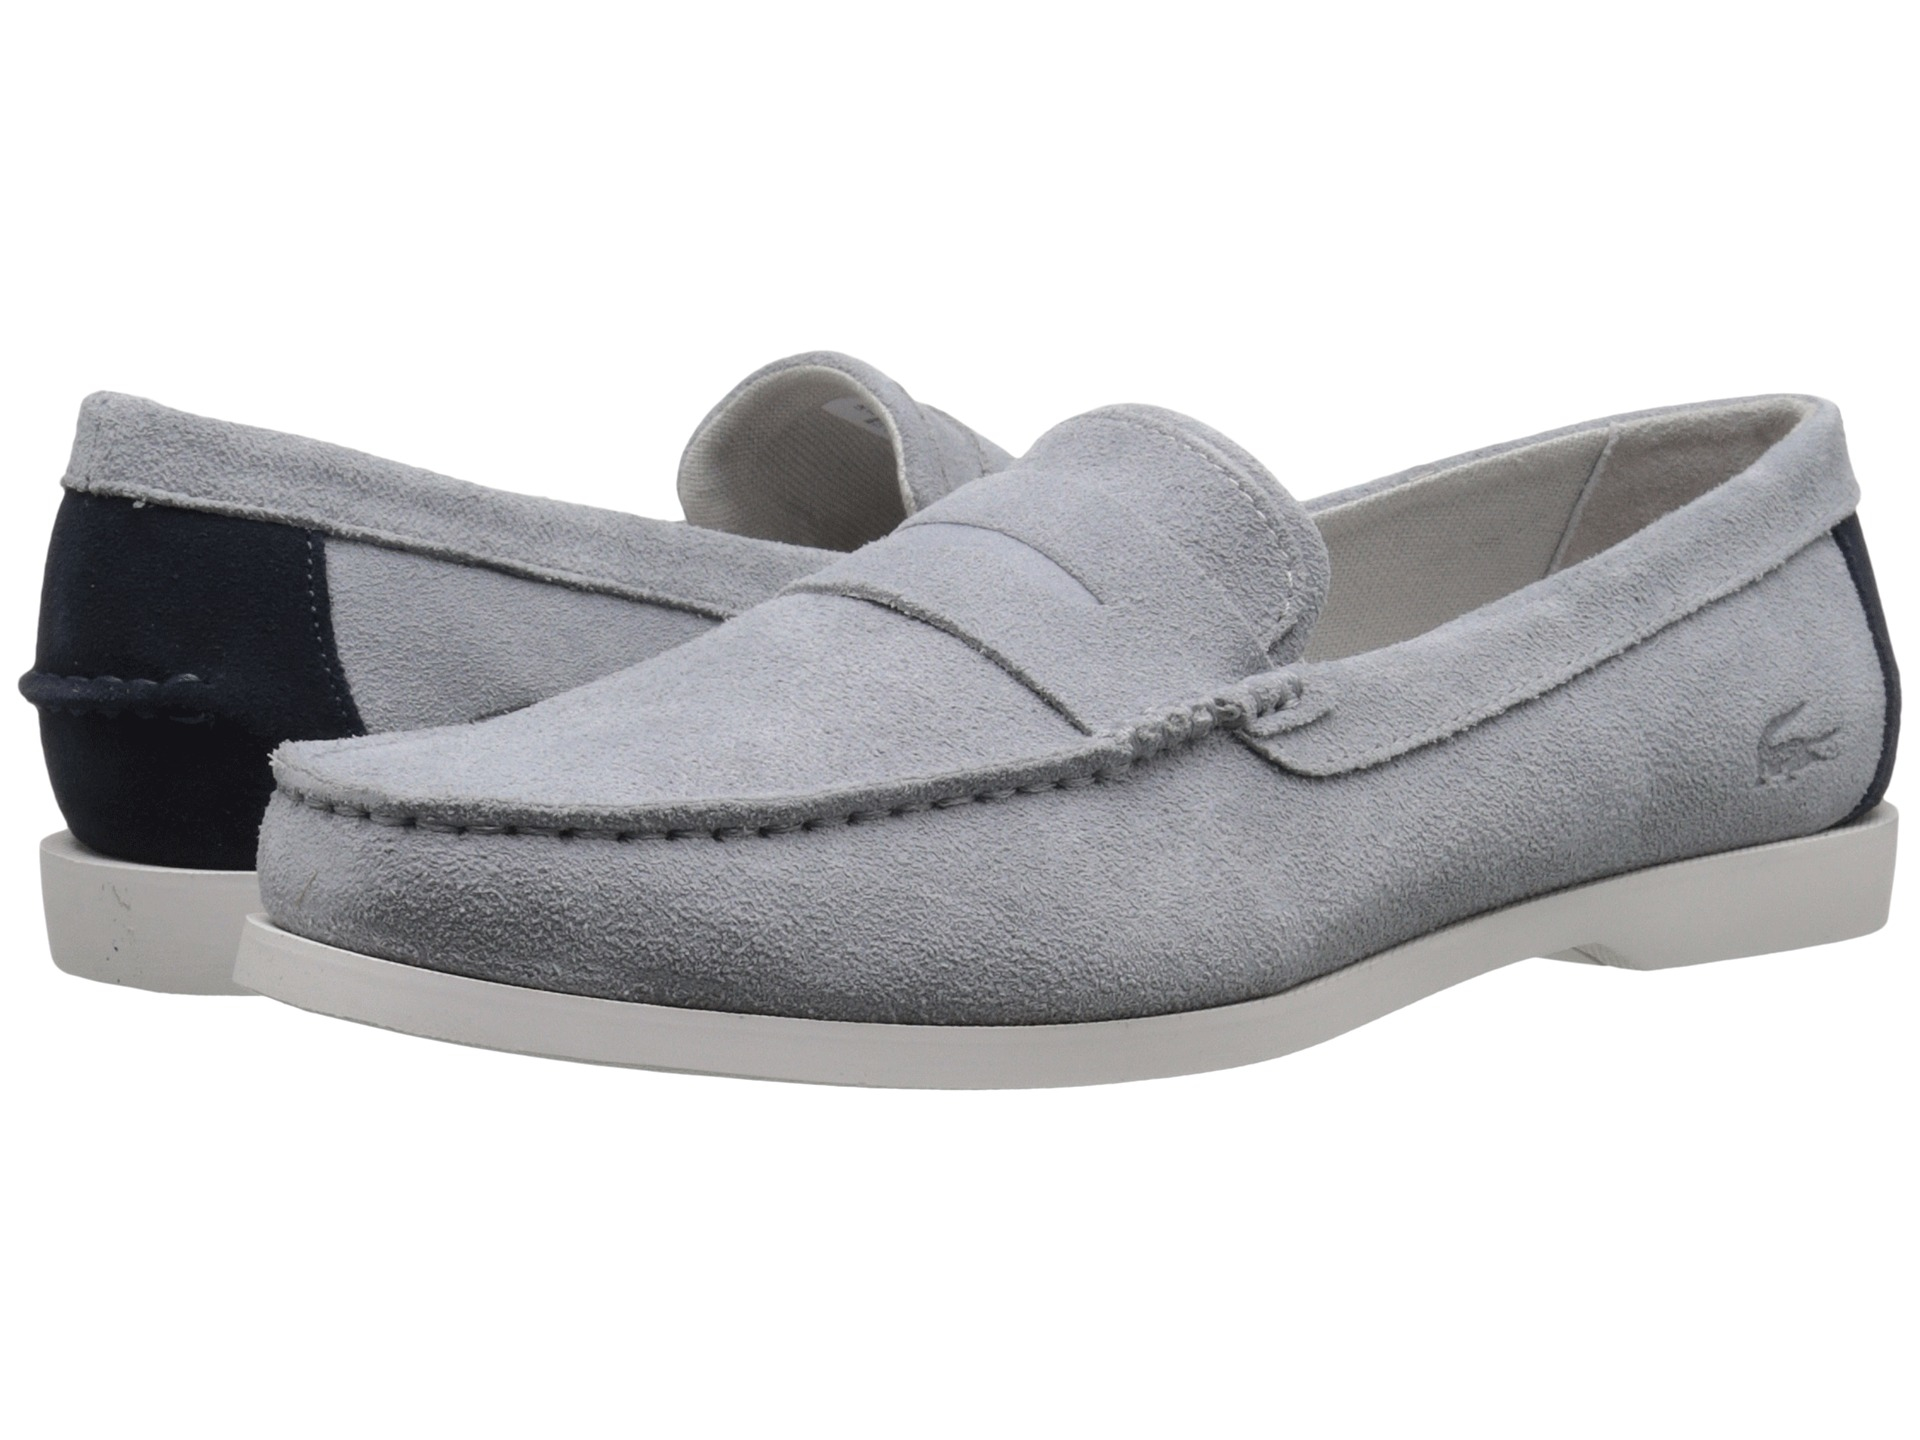 7119e385b Lyst - Lacoste Navire Penny 216 1 in Gray for Men